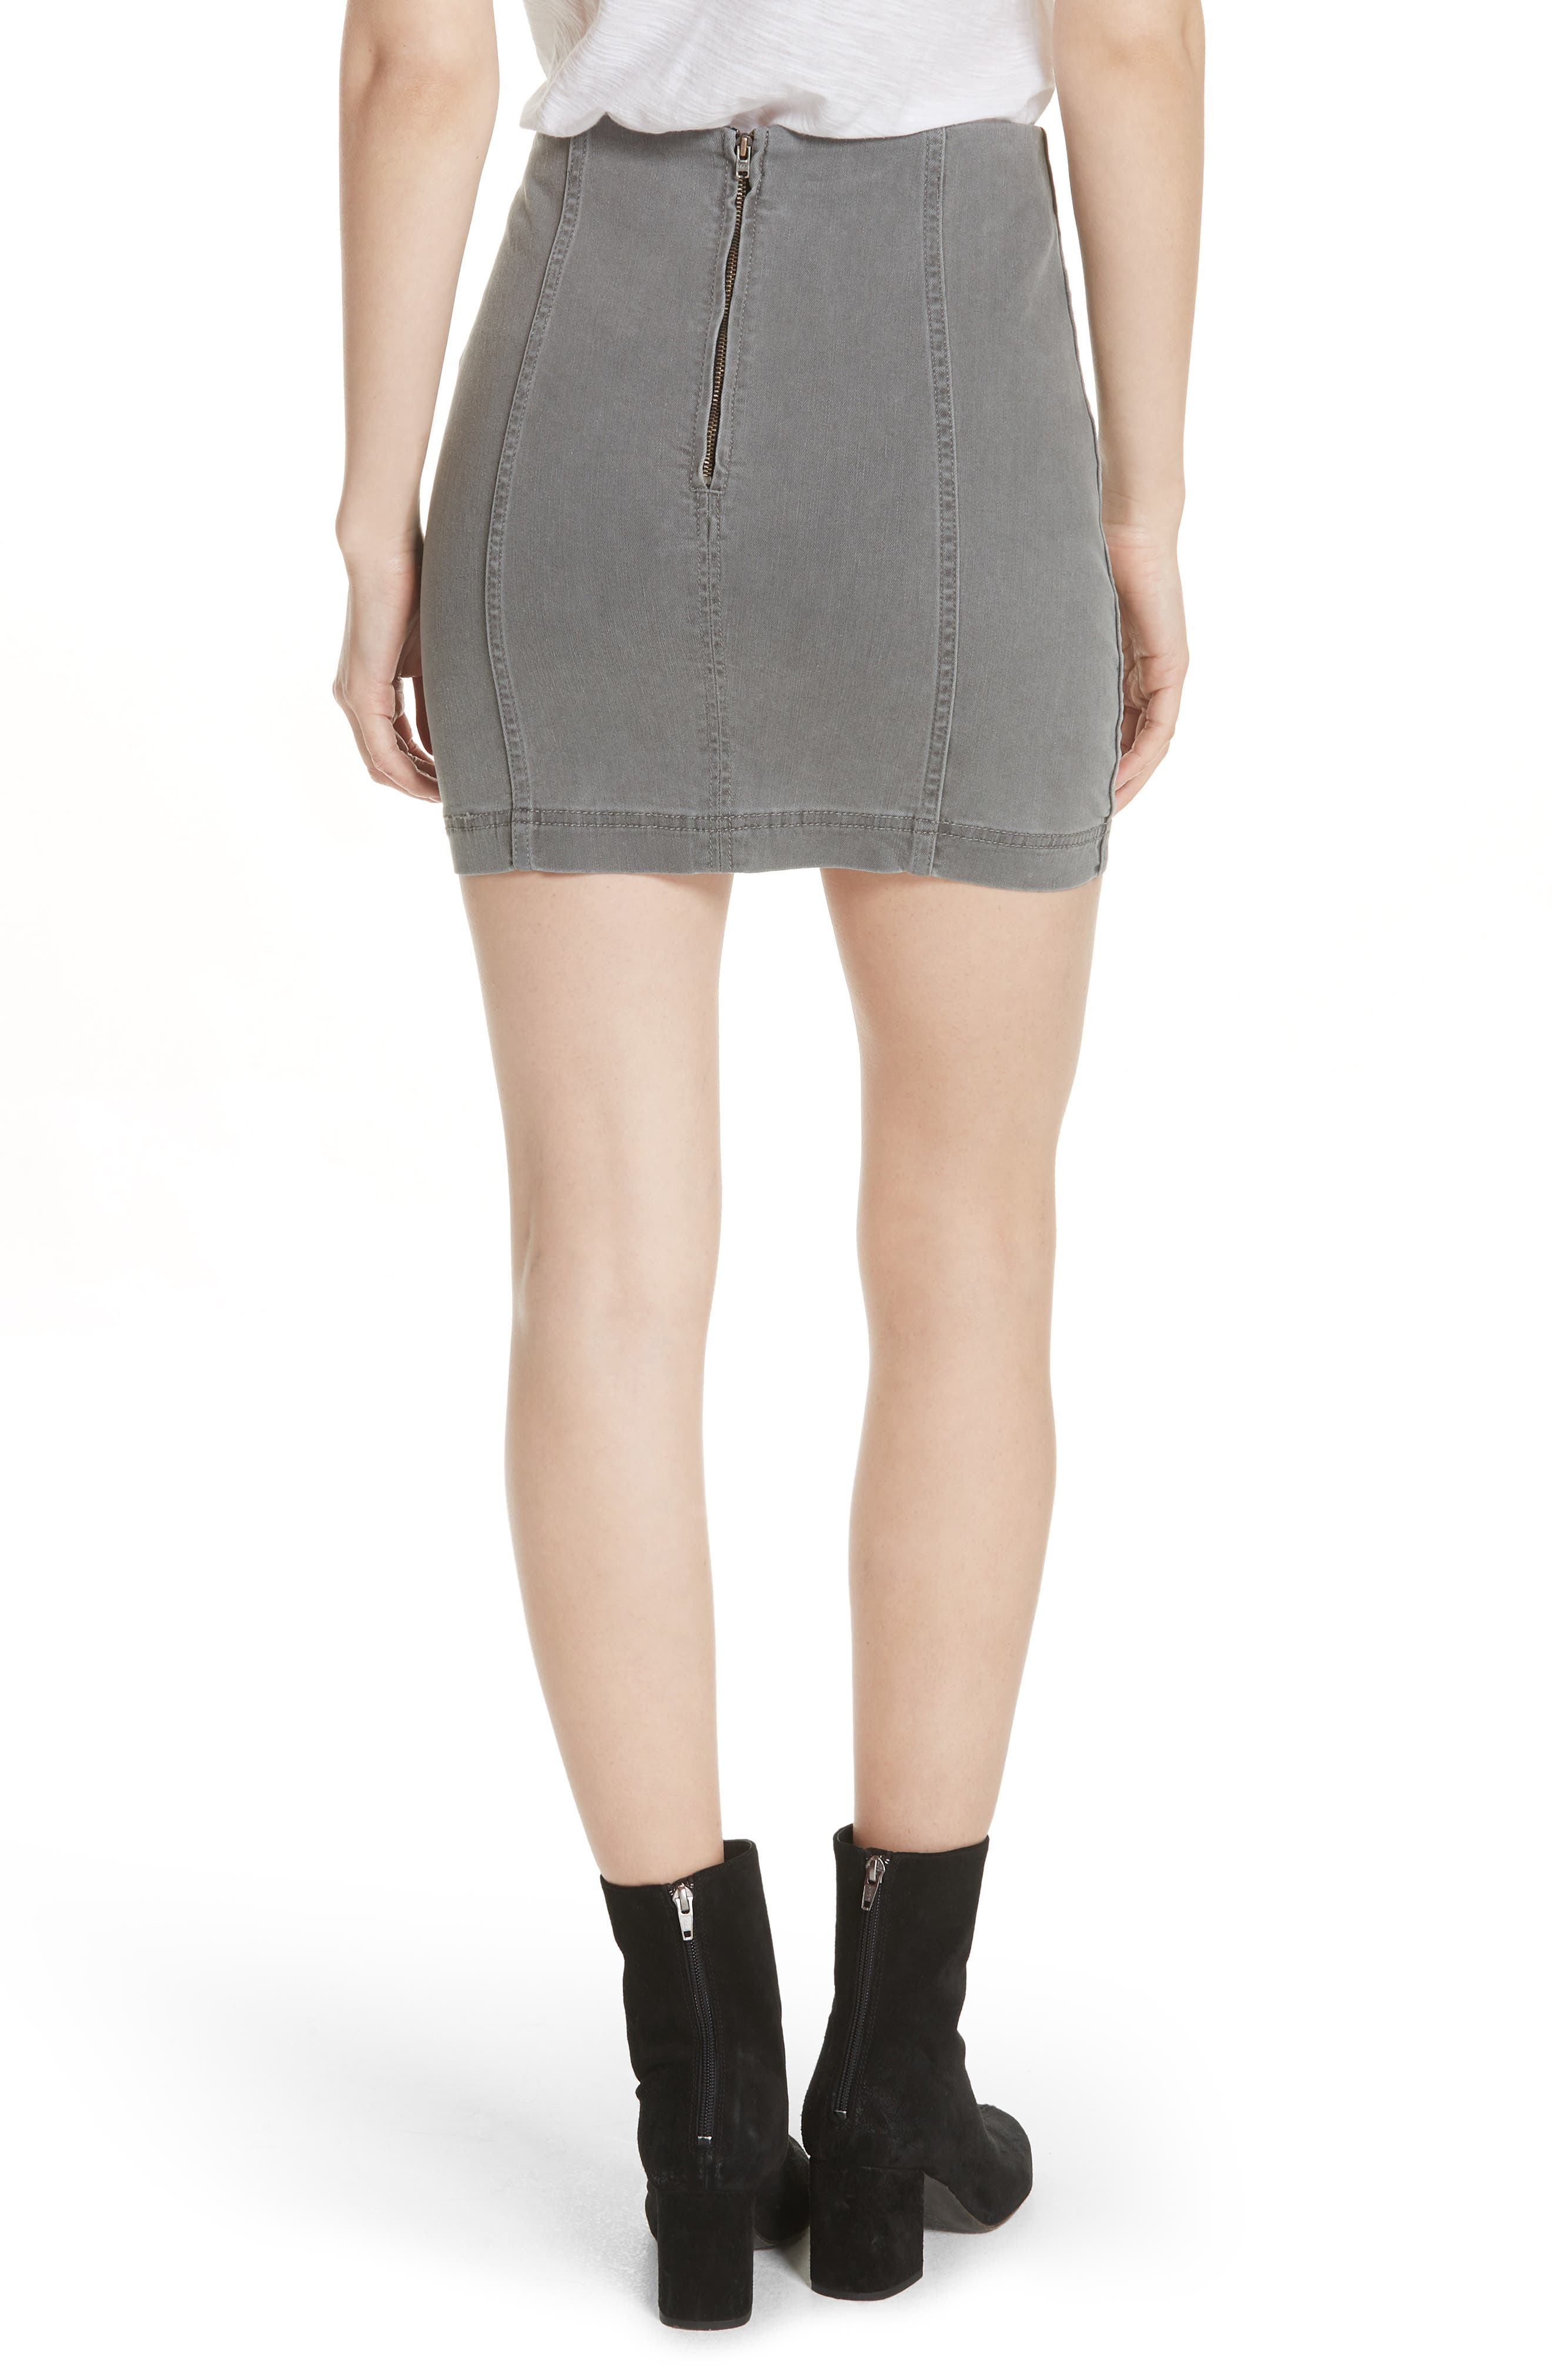 FREE PEOPLE, We the Free by Free People Modern Femme Denim Miniskirt, Alternate thumbnail 2, color, LIGHT GREY